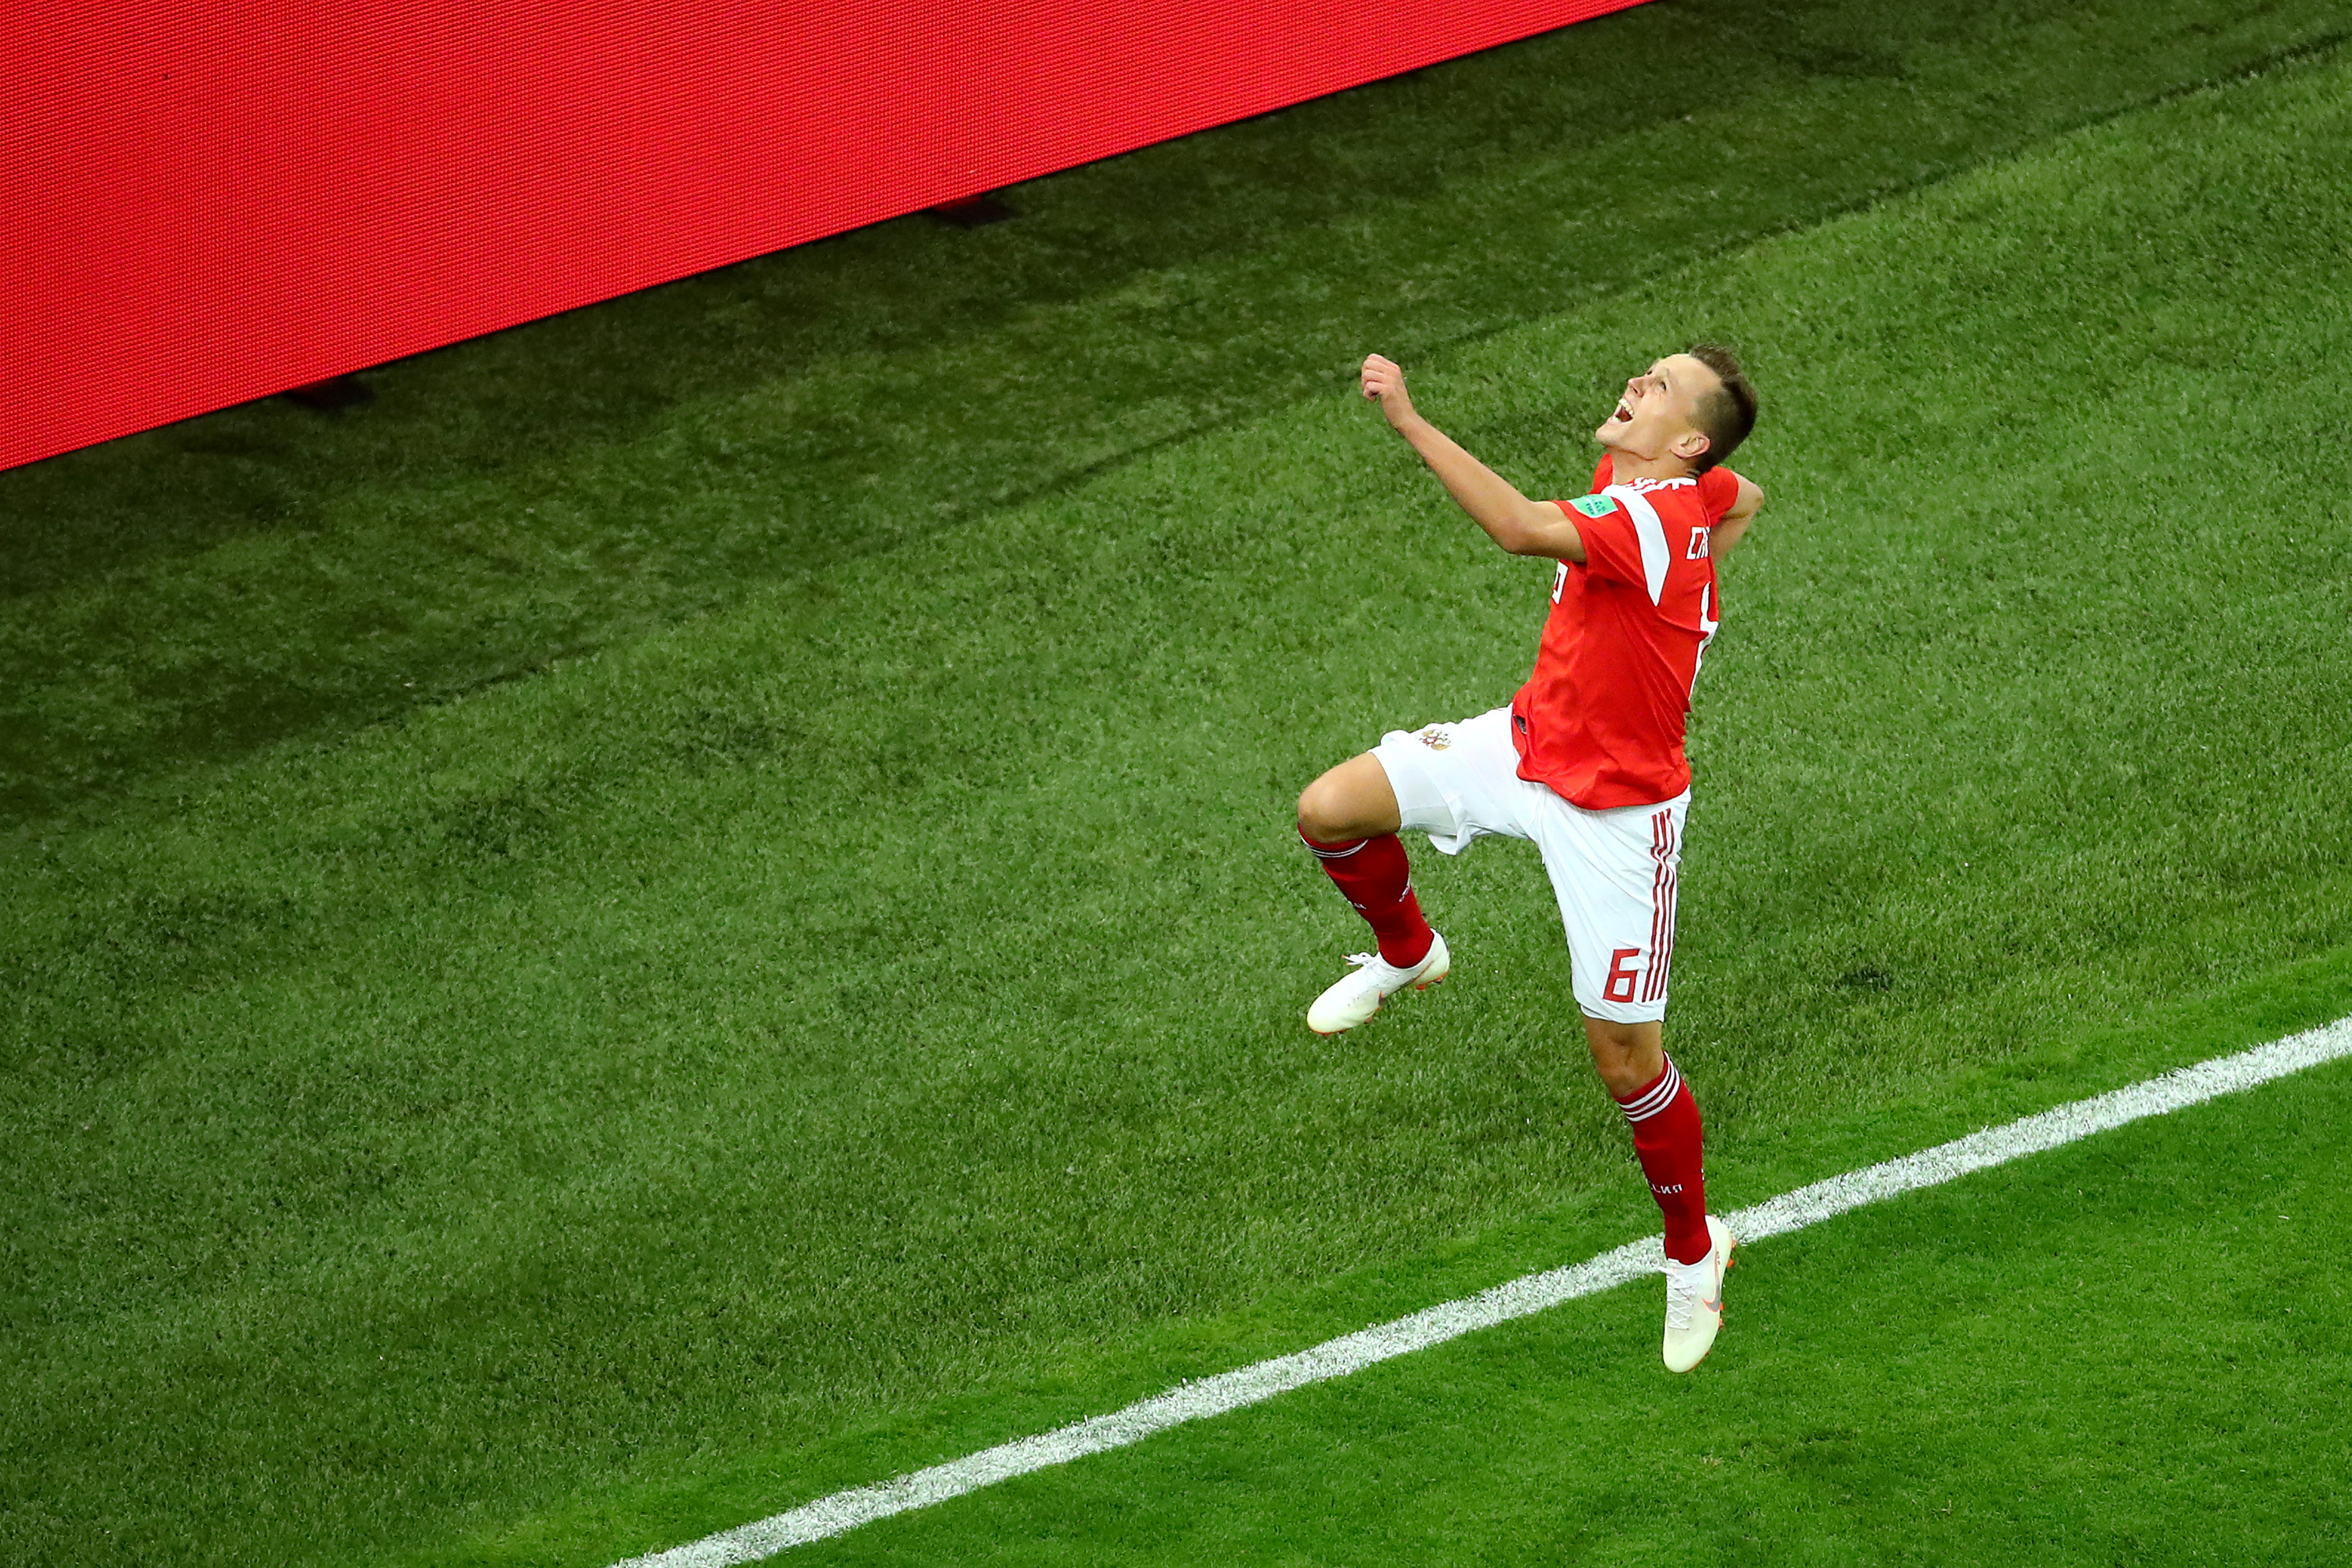 2018-06-19T203105Z_48122182_RC18A68C85C0_RTRMADP_3_SOCCER-WORLDCUP-RUS-EGY